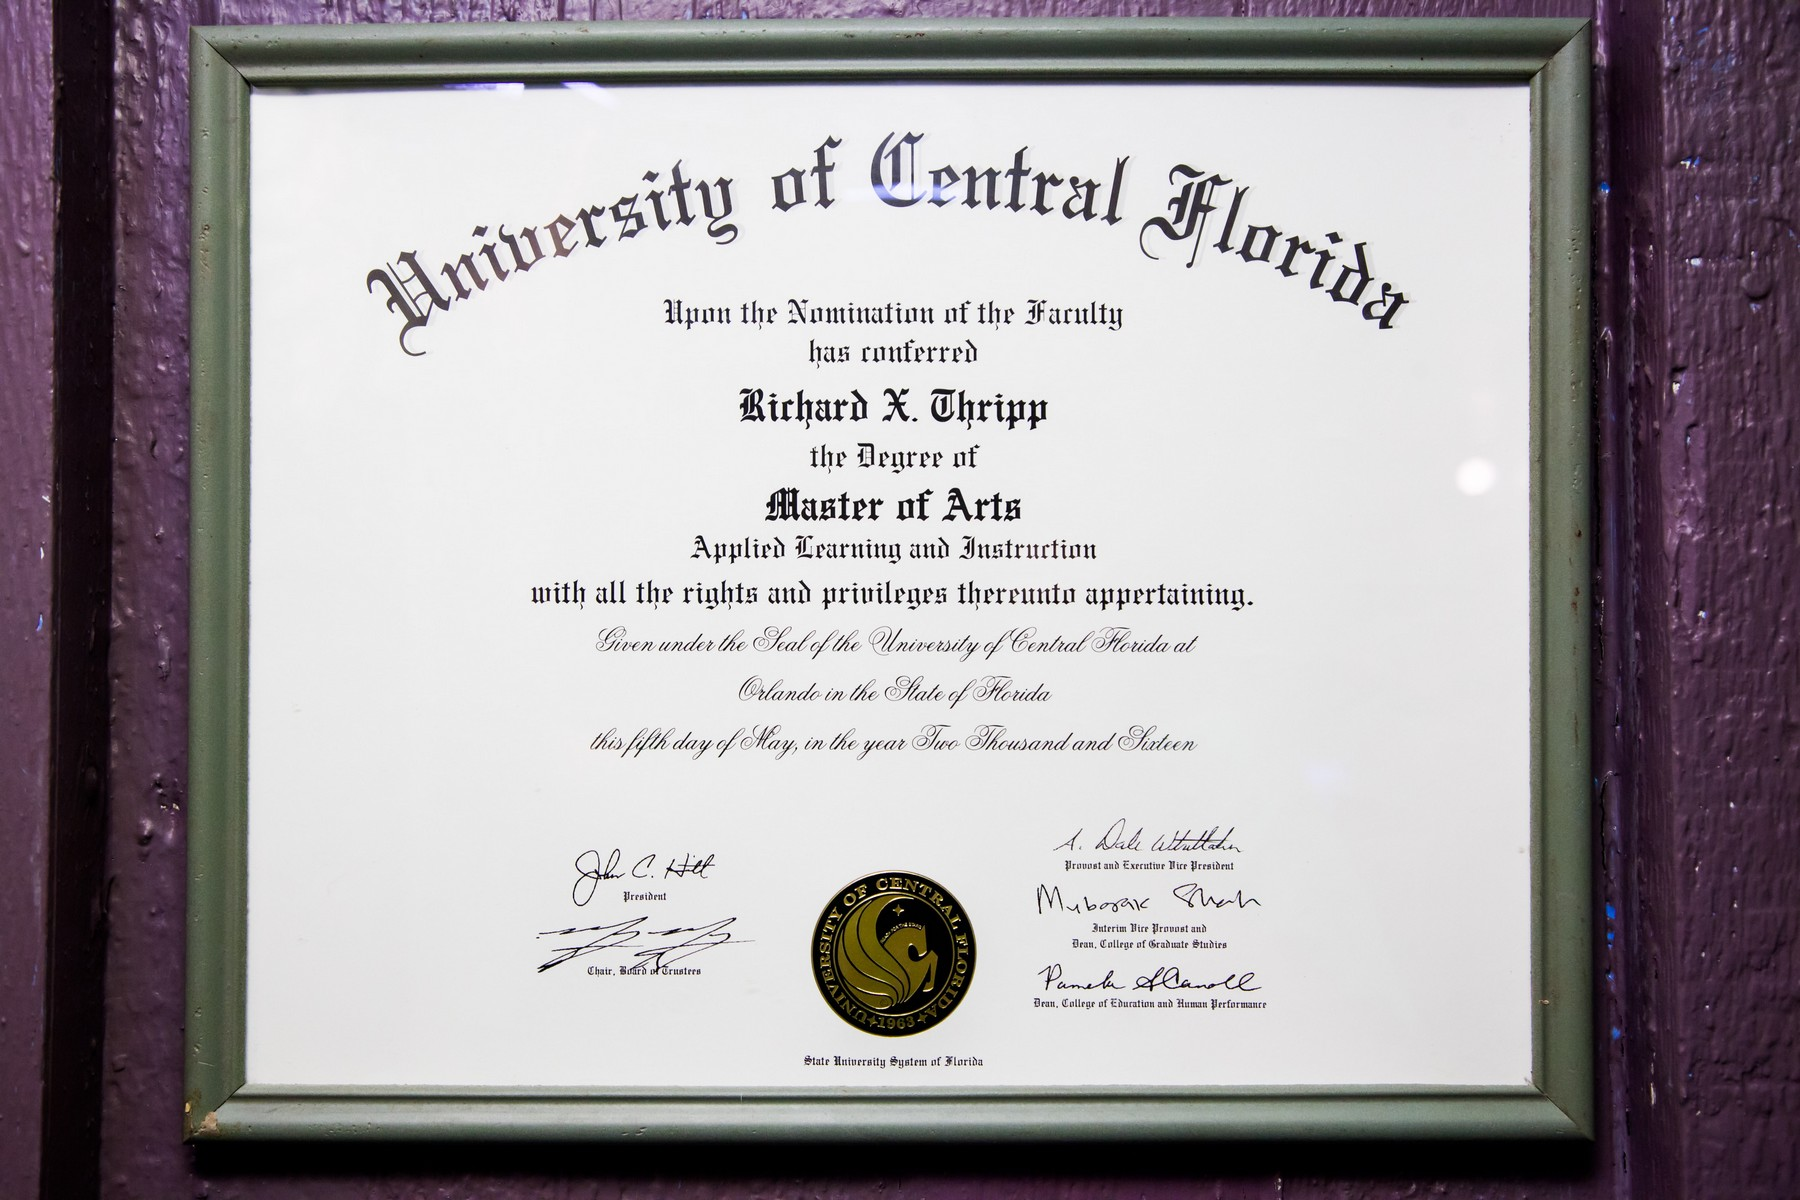 Reflections On Completing My Masters Degree Richard Thripps Website